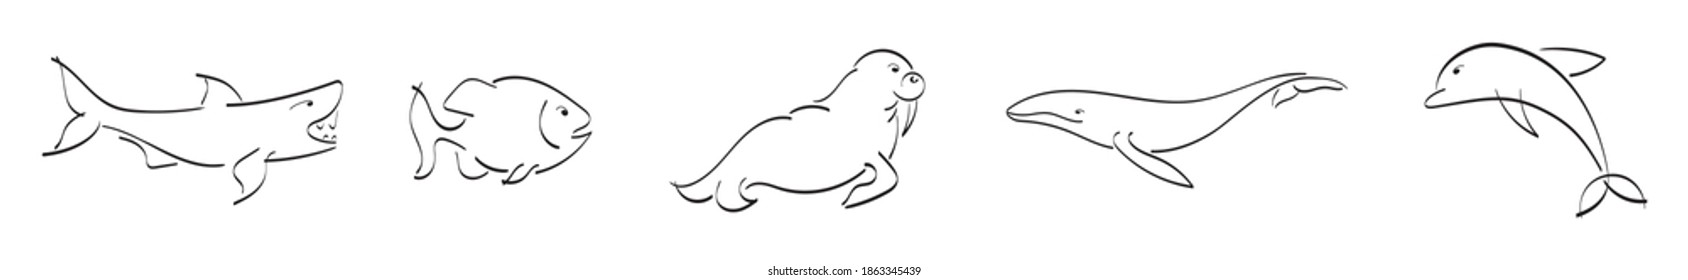 Vector illustration of black outline of sea animals. Logo of shark, fish, piranha, walrus, whale, dolphin. Ink calligraphy. A simple image with the pen. Black ribbons. Logos with animals.